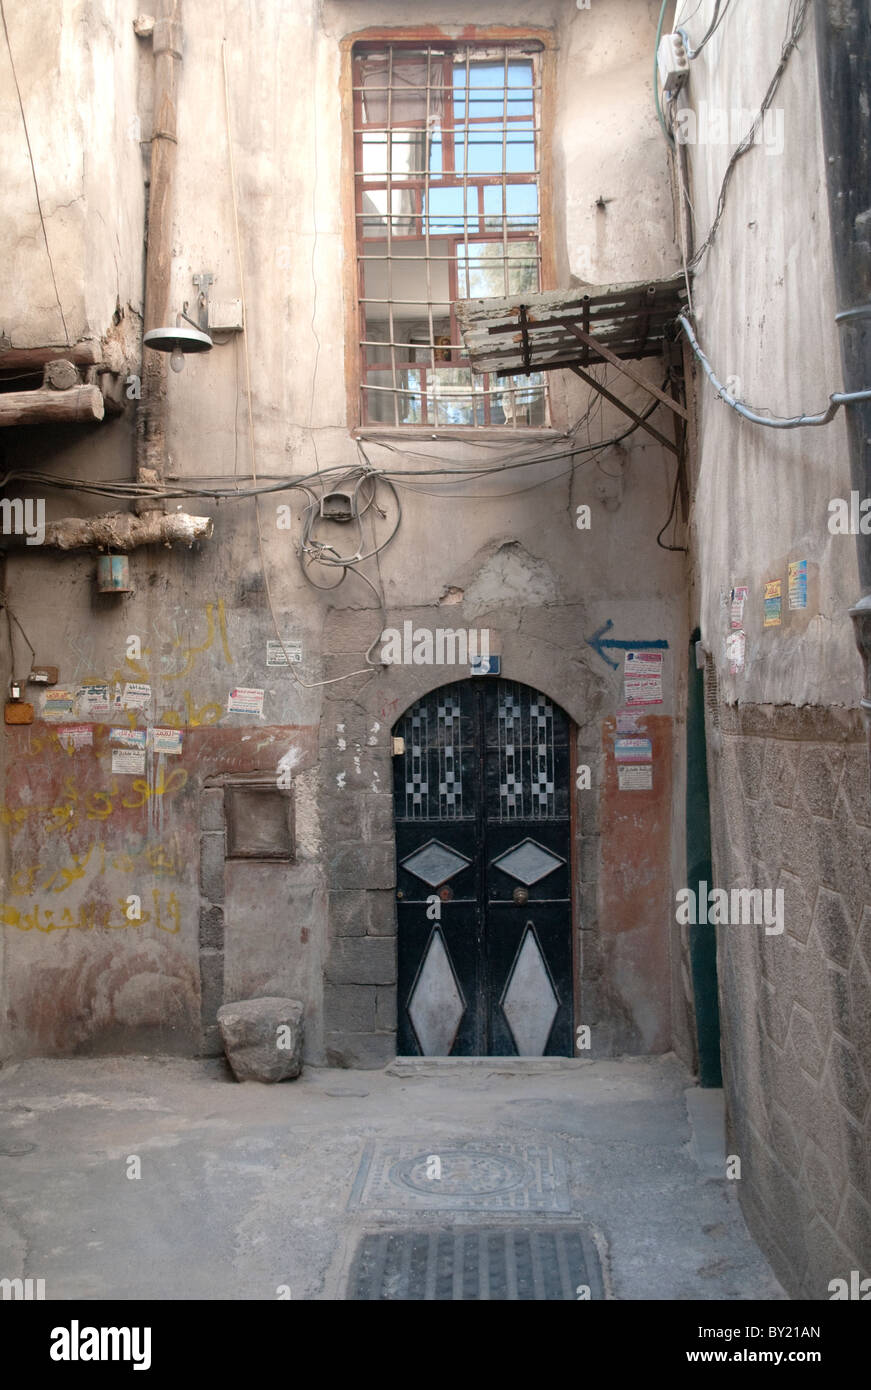 A cul-de-sac in the Bab Touma district of the old city of Damascus. - Stock Image